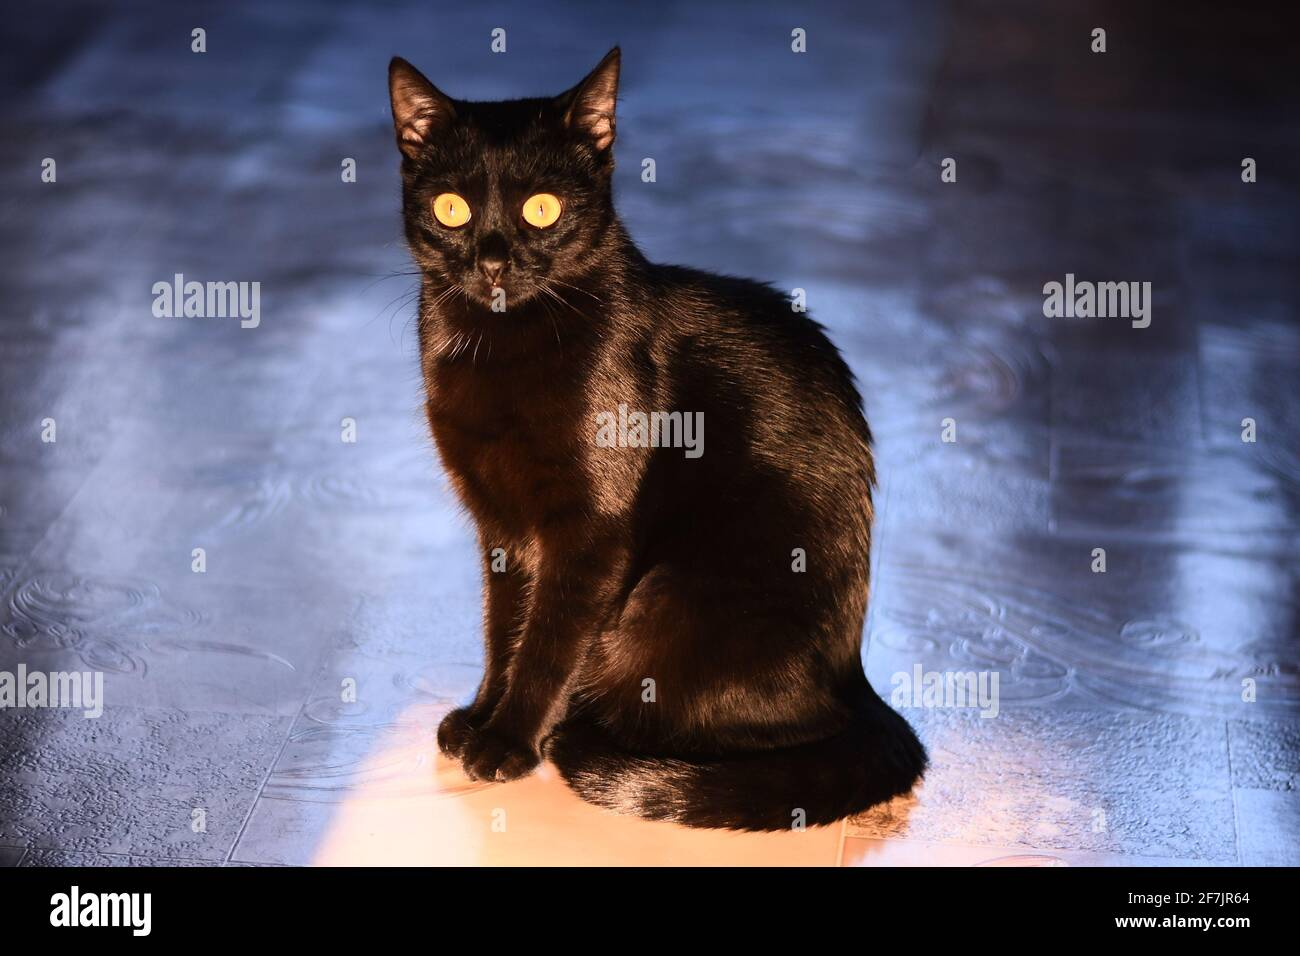 A black cat sits on the floor. Stock Photo